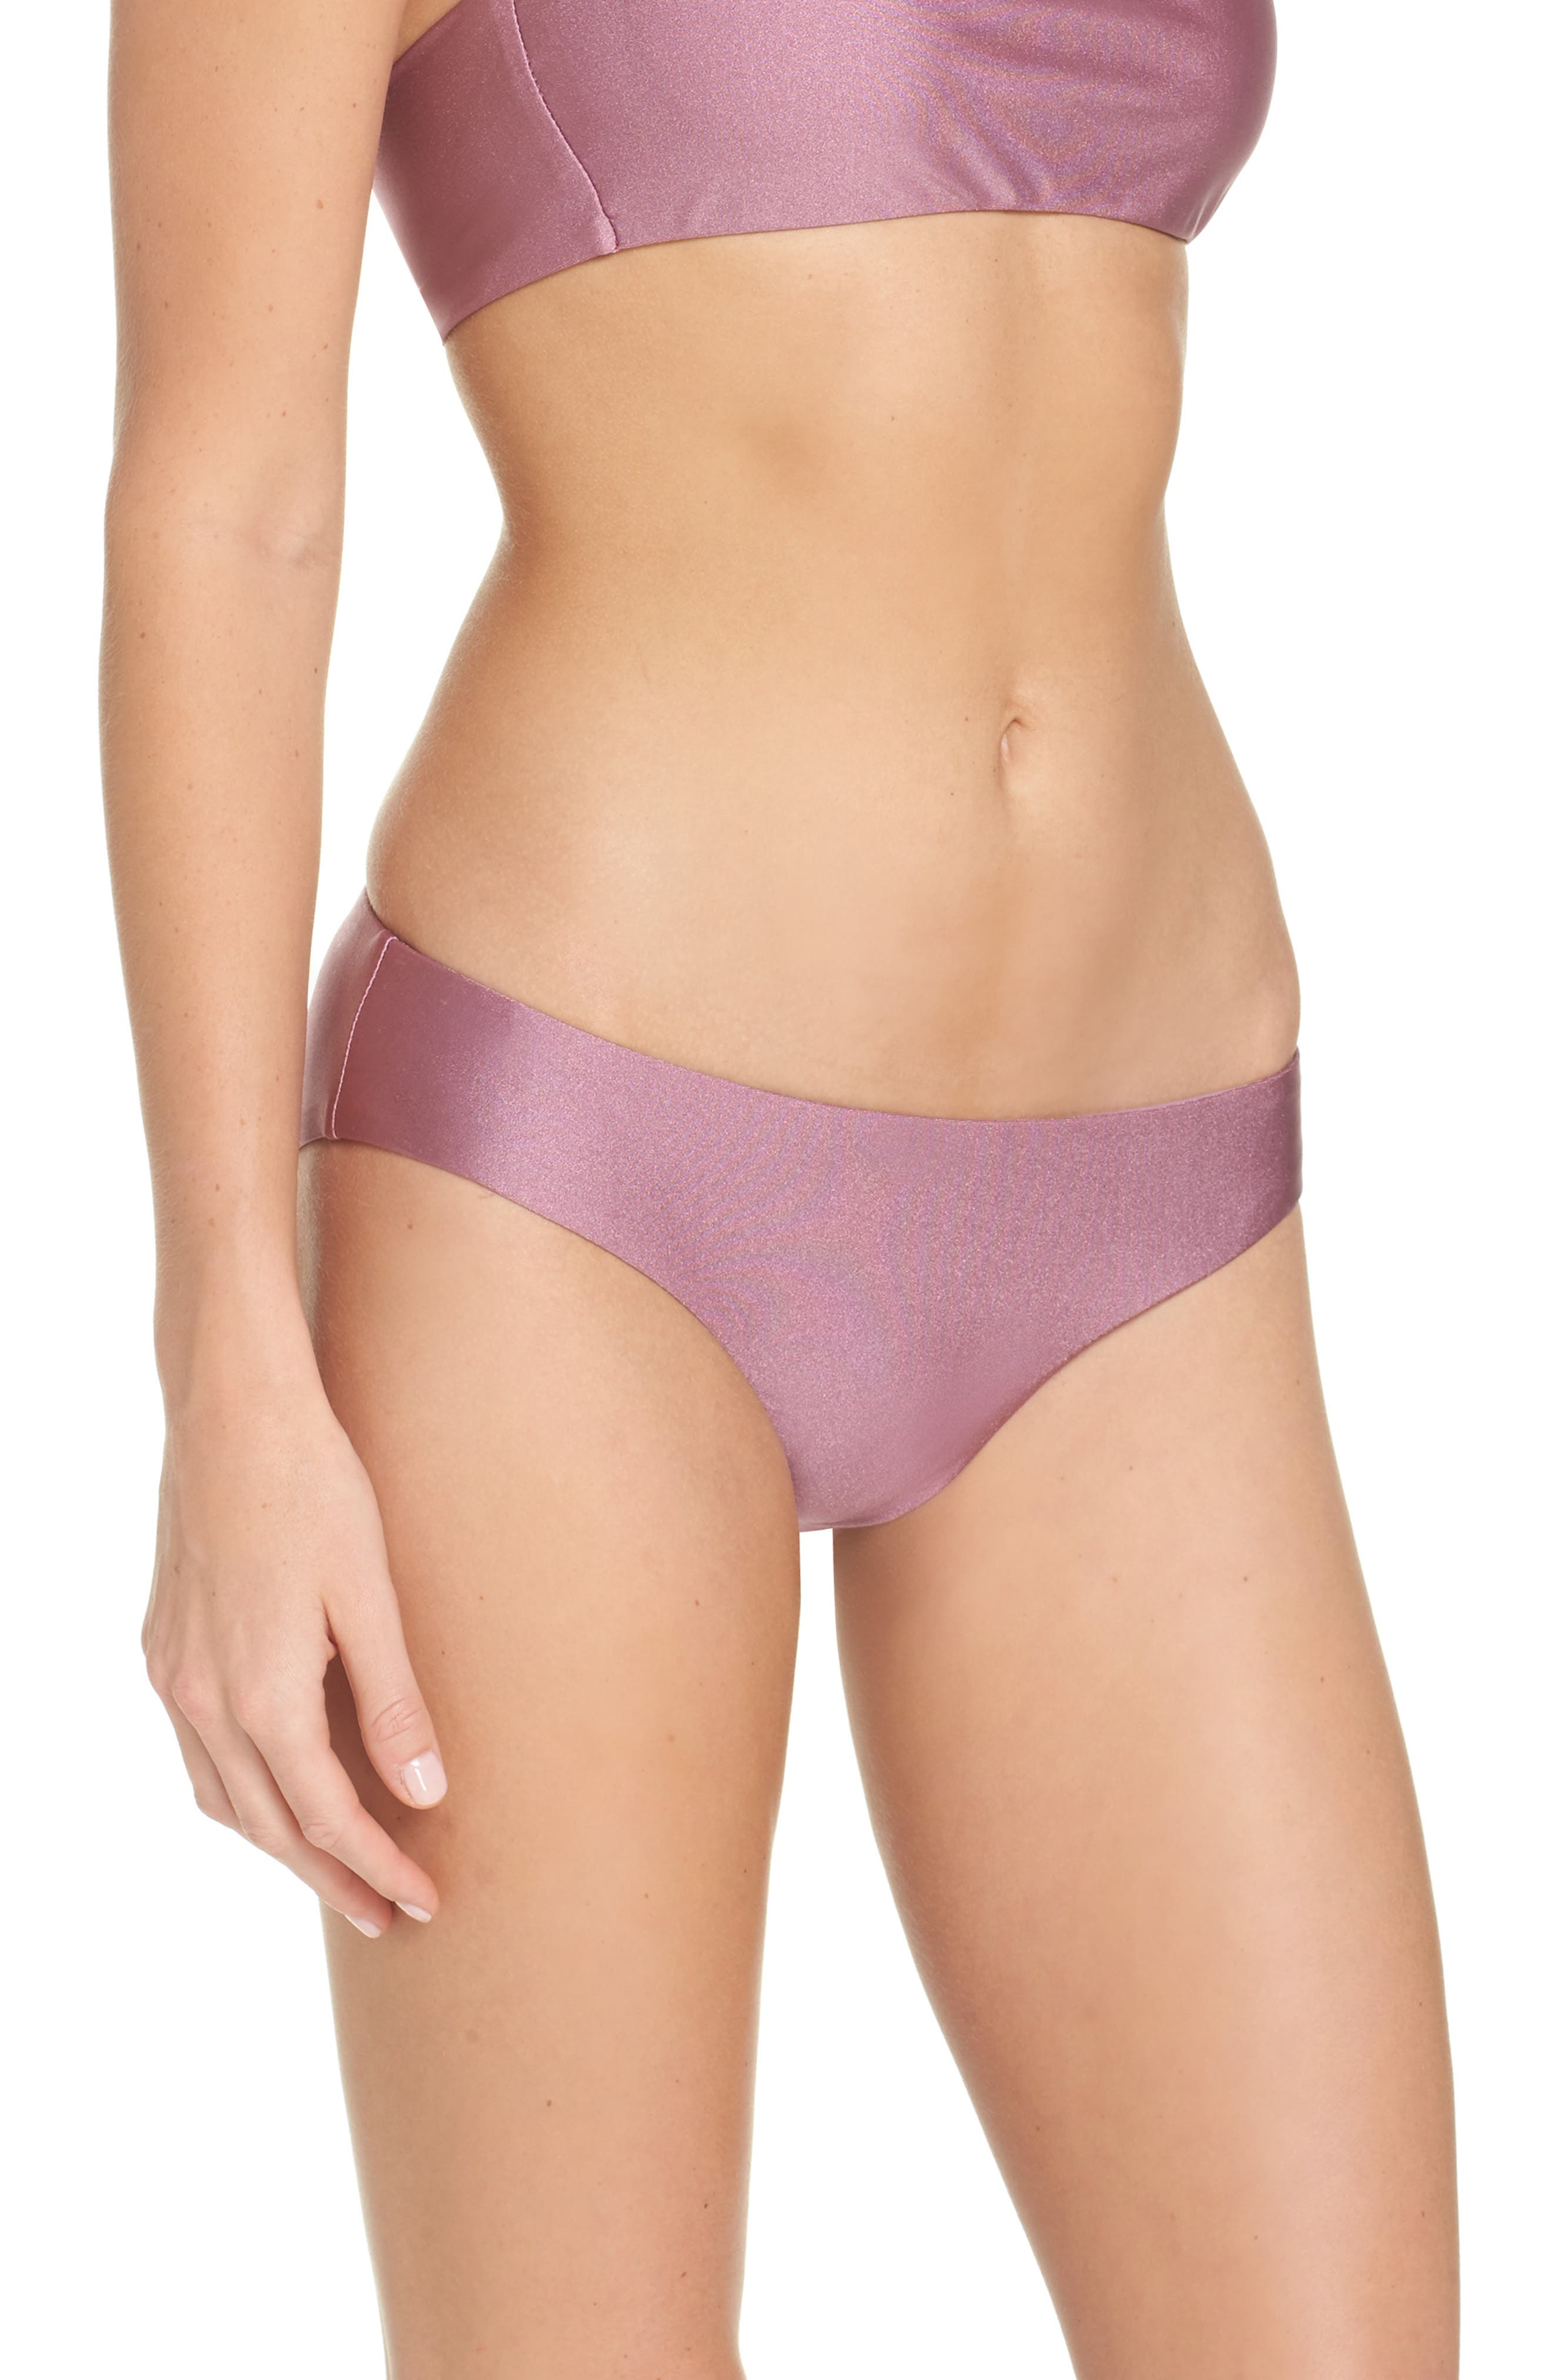 Ballerina Bikini Bottoms,                             Alternate thumbnail 3, color,                             500